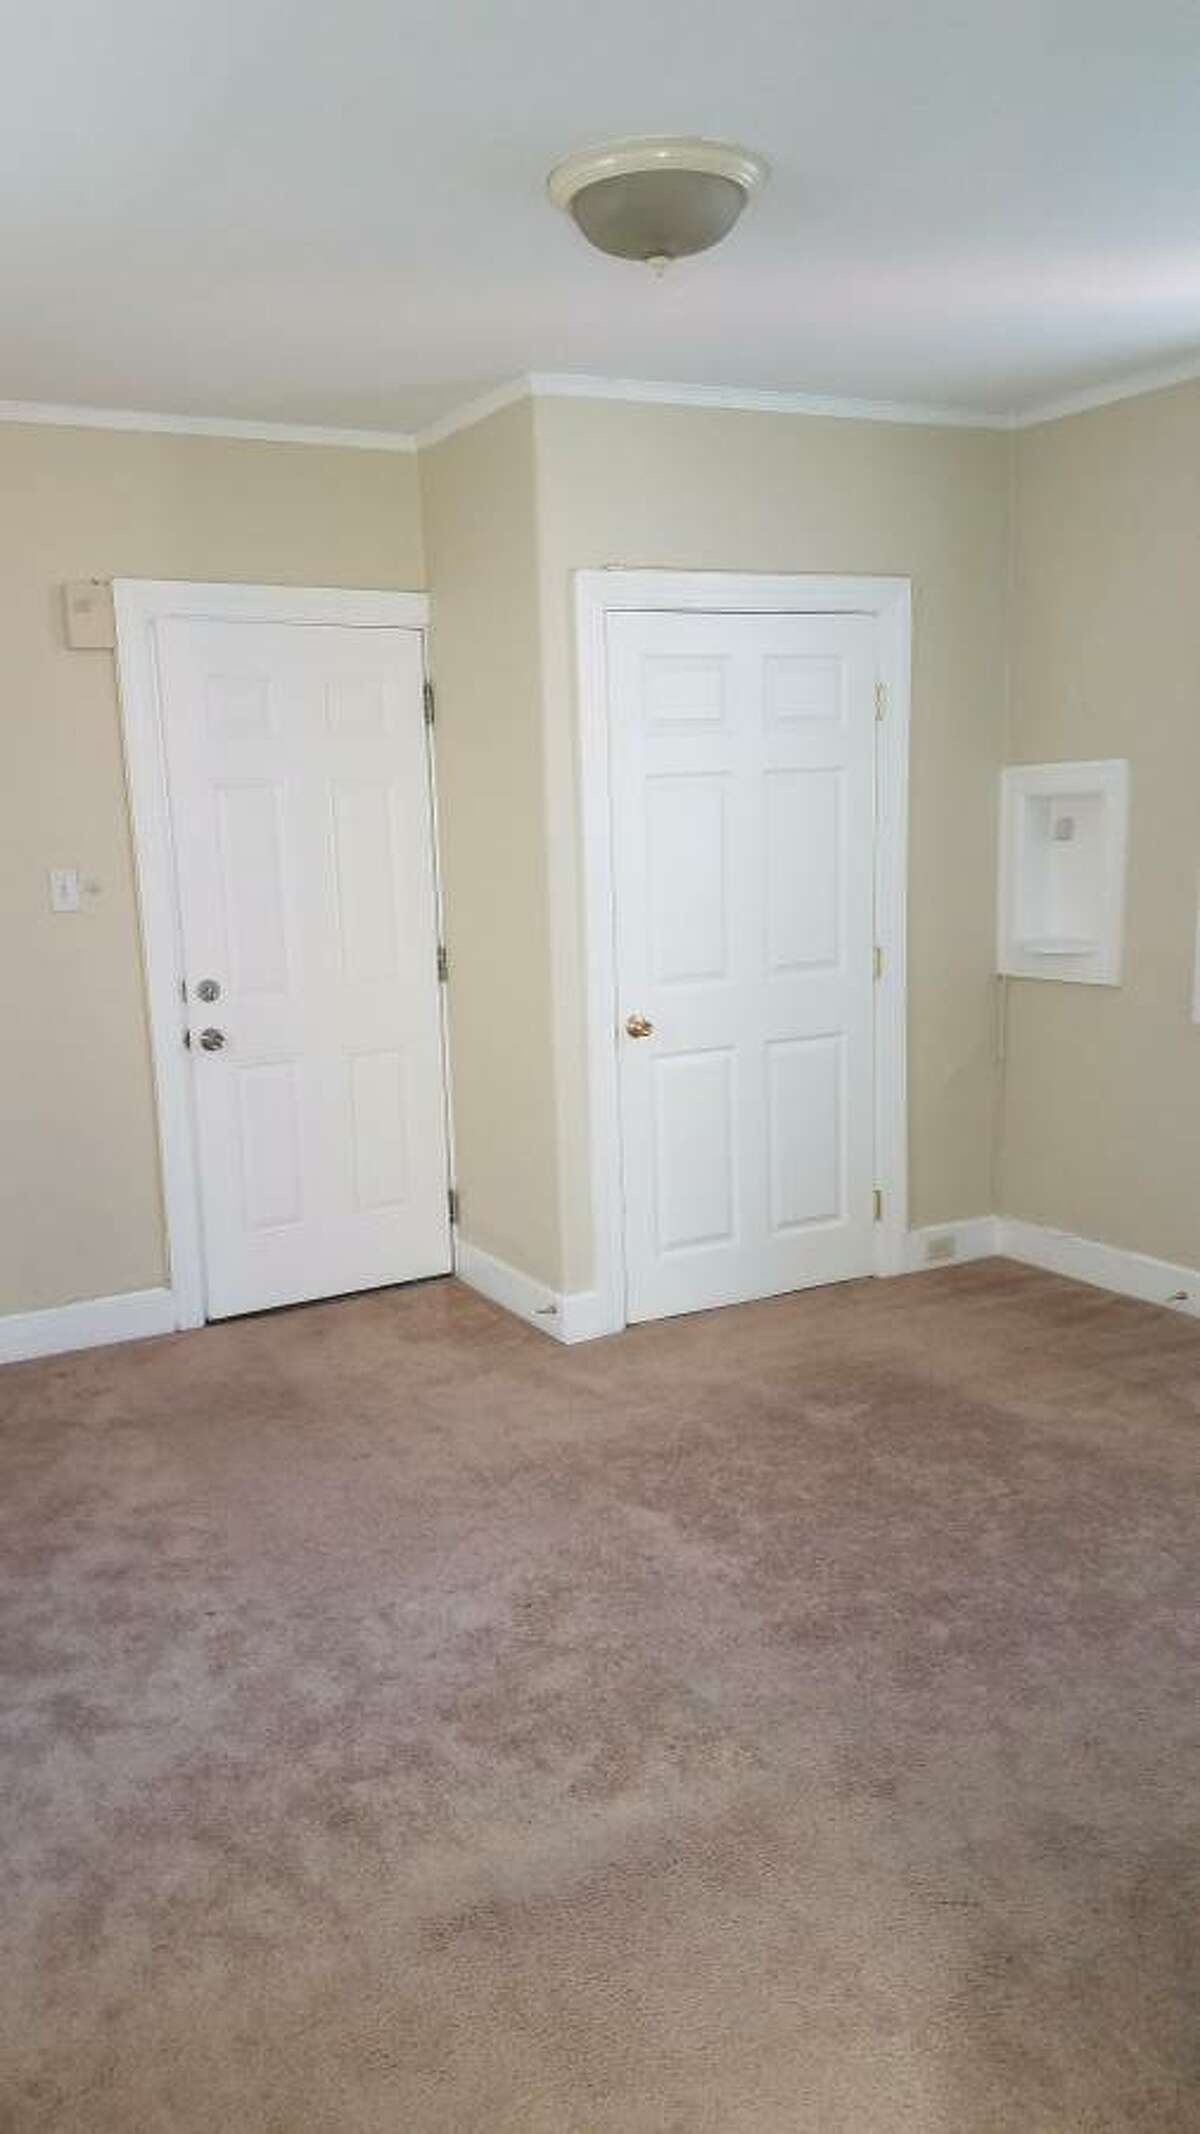 The Folsom 2-BR also has parking for $250 more per month. Source: Craigslist.